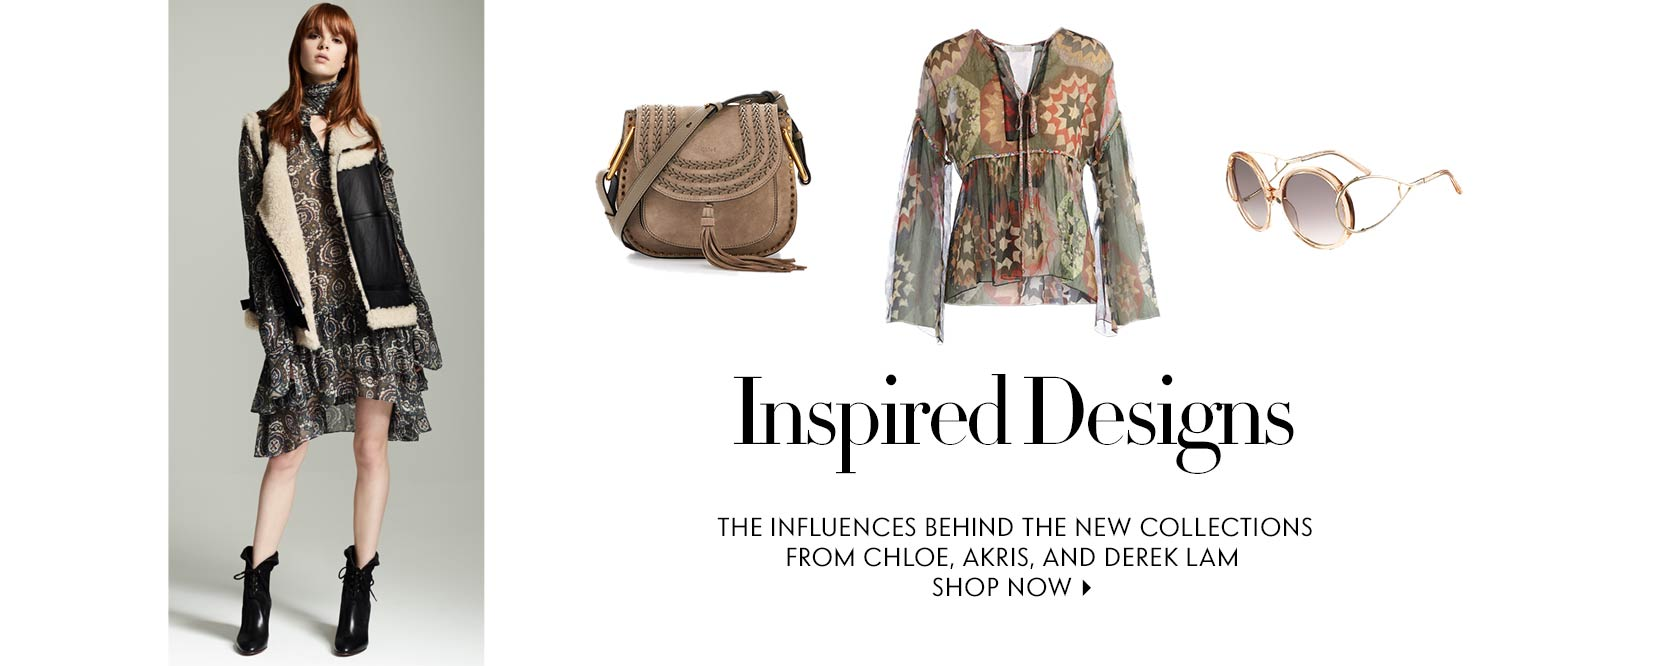 Inspired Designs. The influences behind the new collections from Chloe, Akris, and derek lam